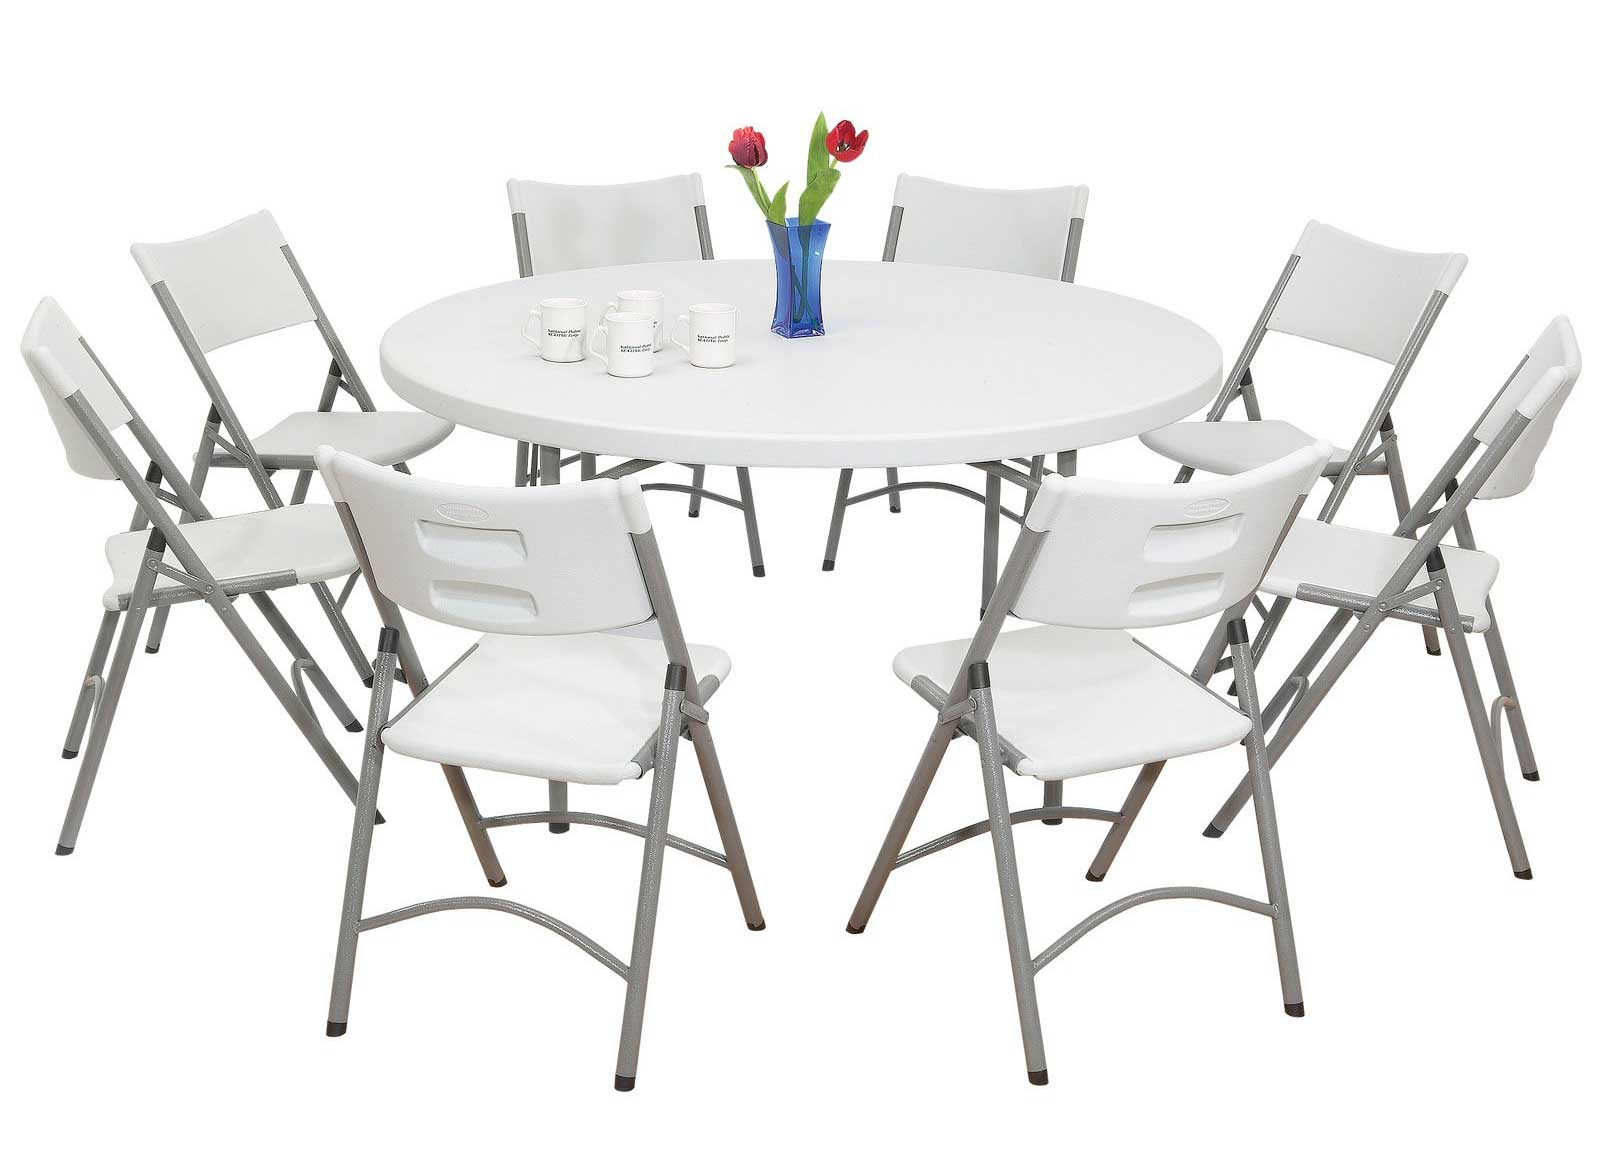 NPS Blow Molded White Chair Sets and Round Table